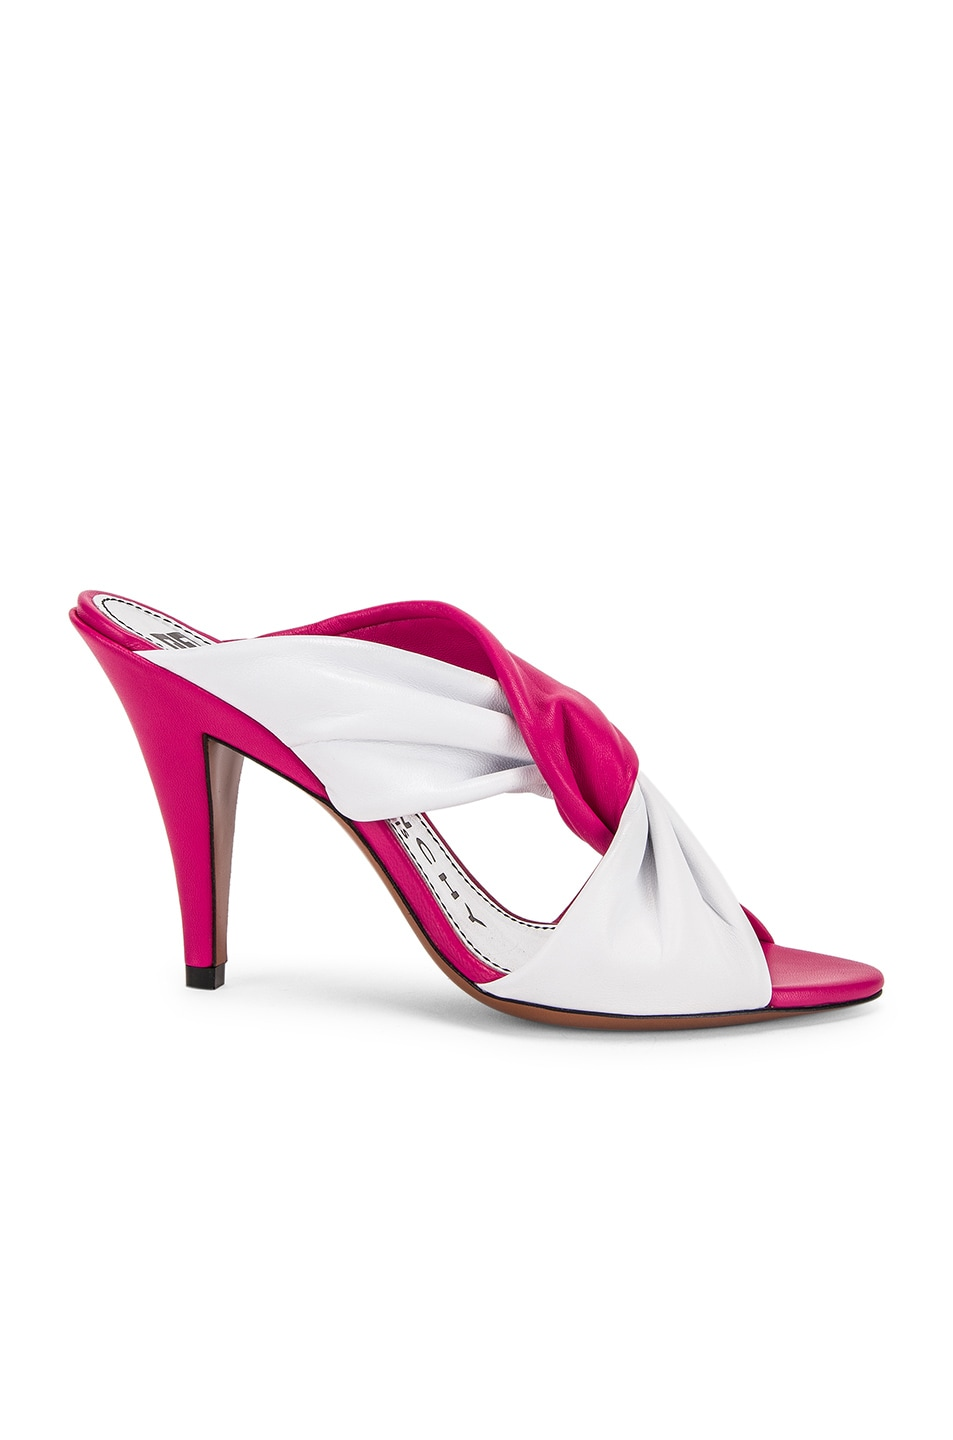 Image 1 of Givenchy Tie Heel Mules in White & Cyclamen